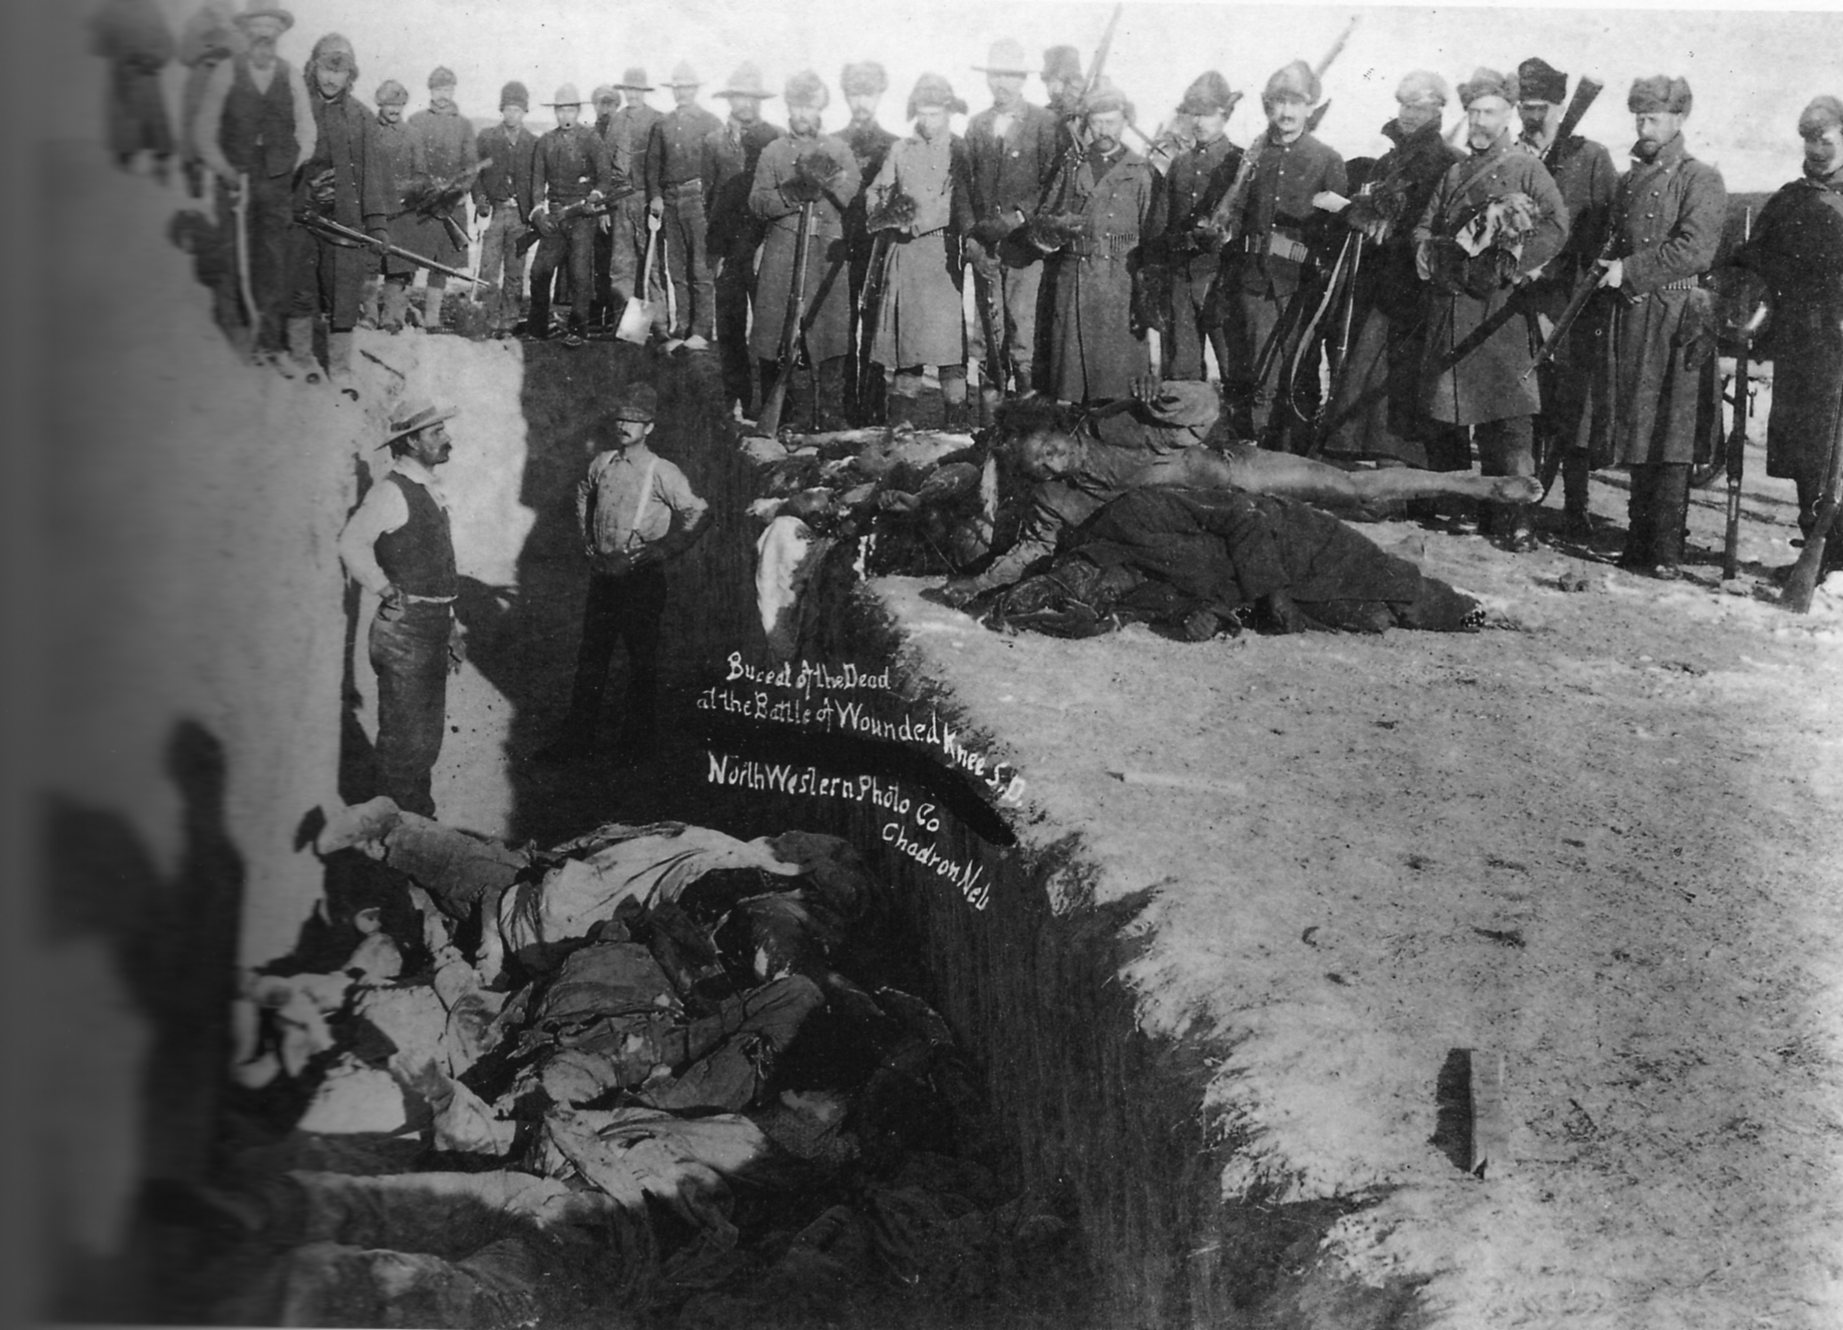 Burial of the dead after the massacre of Wounded Knee.